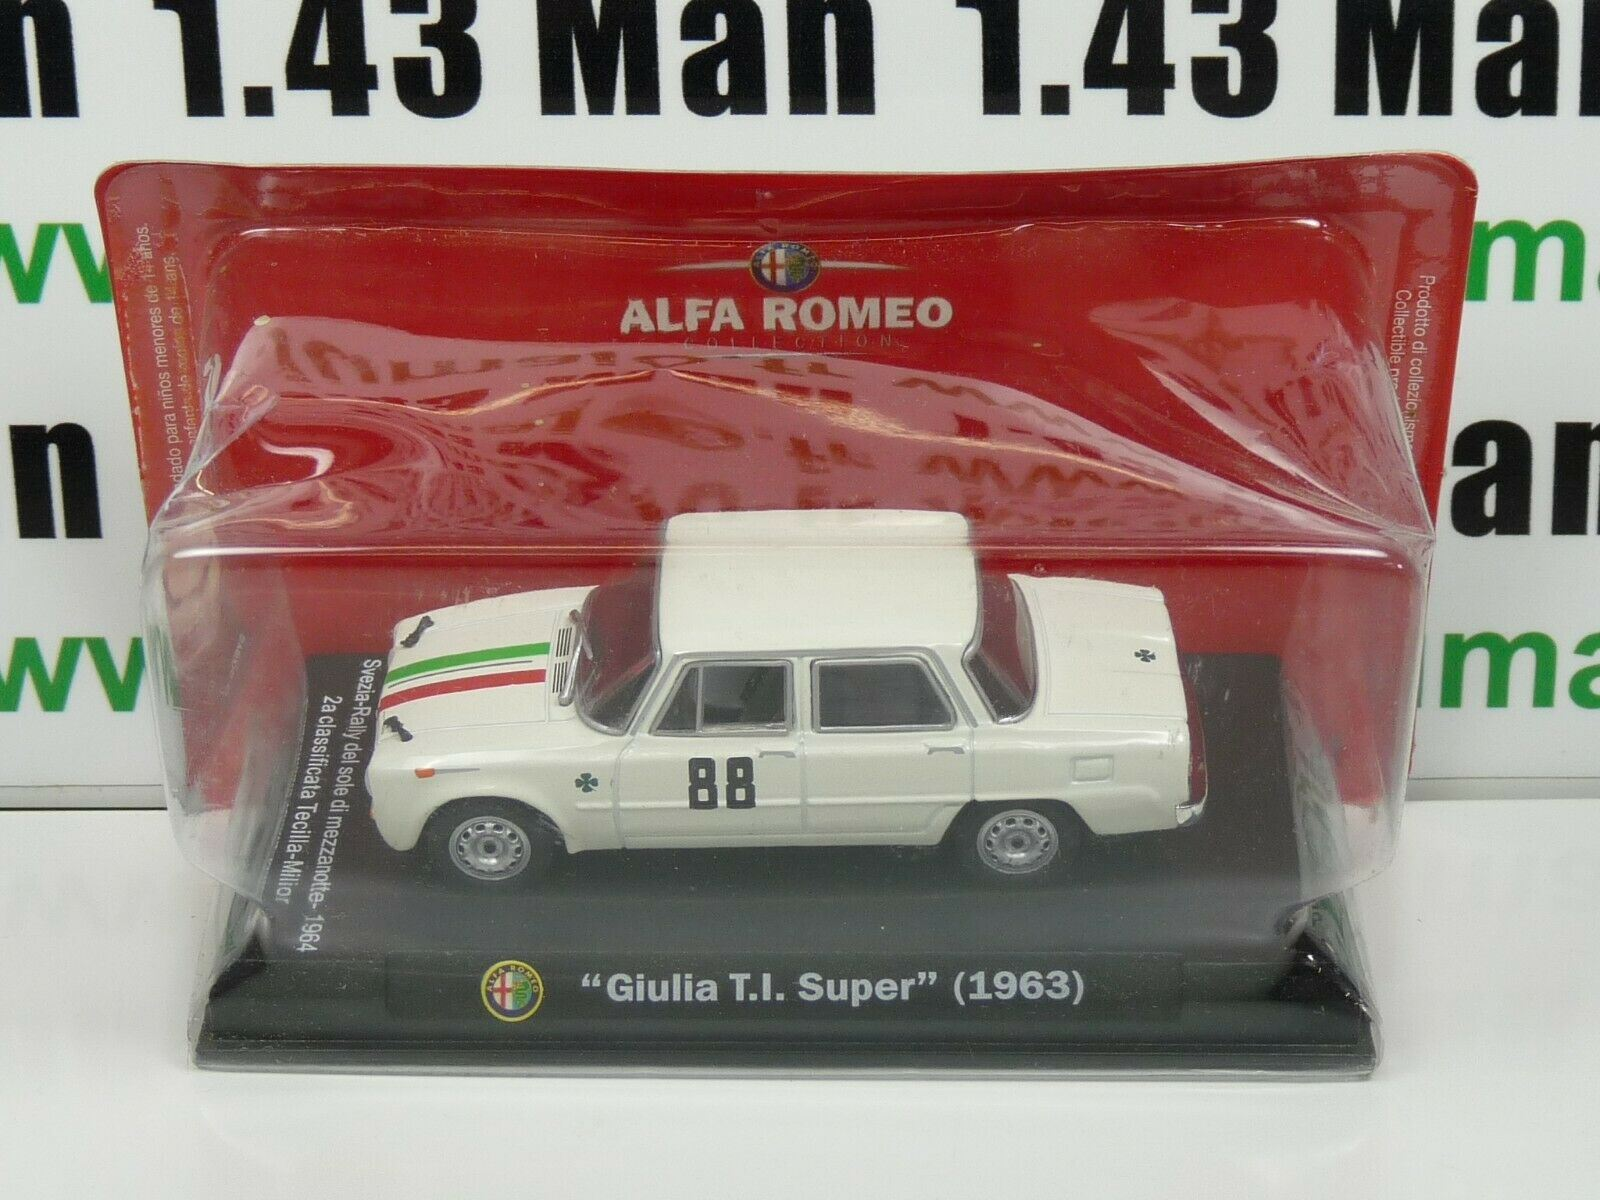 Giulia TI Super 1963 IT86N Voiture 1//43 Hachette ALFA ROMEO collection